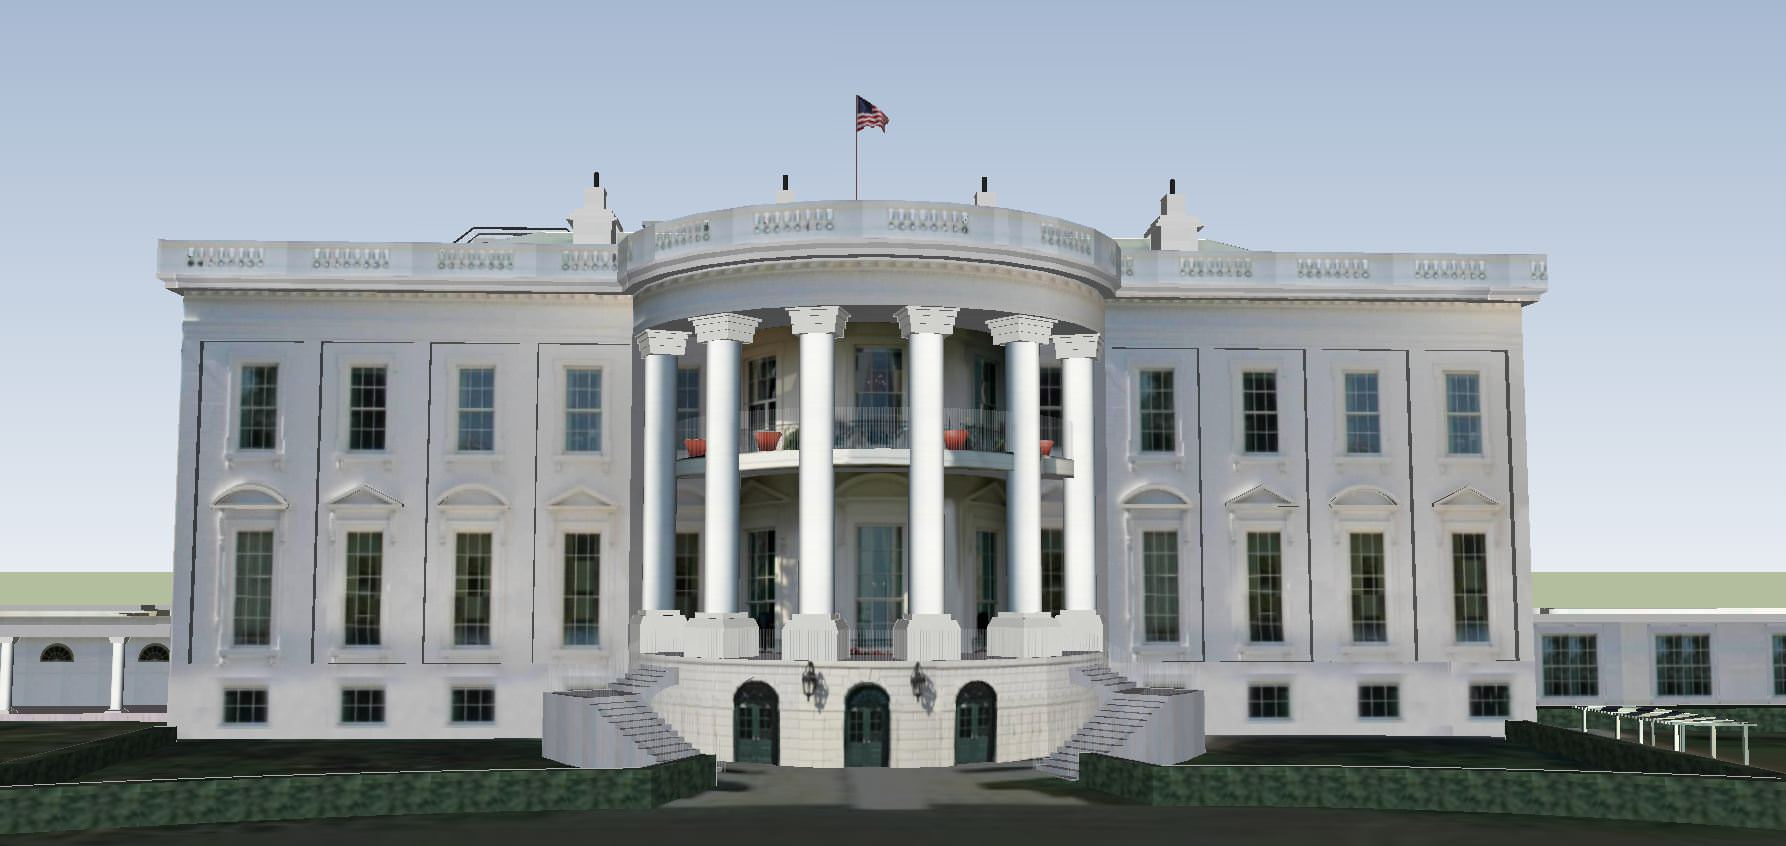 The White House 3D Model skp CGTradercom : thewhitehouse3dmodelskp6a83fc9f a3ea 4835 ab12 31912d77228e from www.cgtrader.com size 1786 x 846 jpeg 109kB